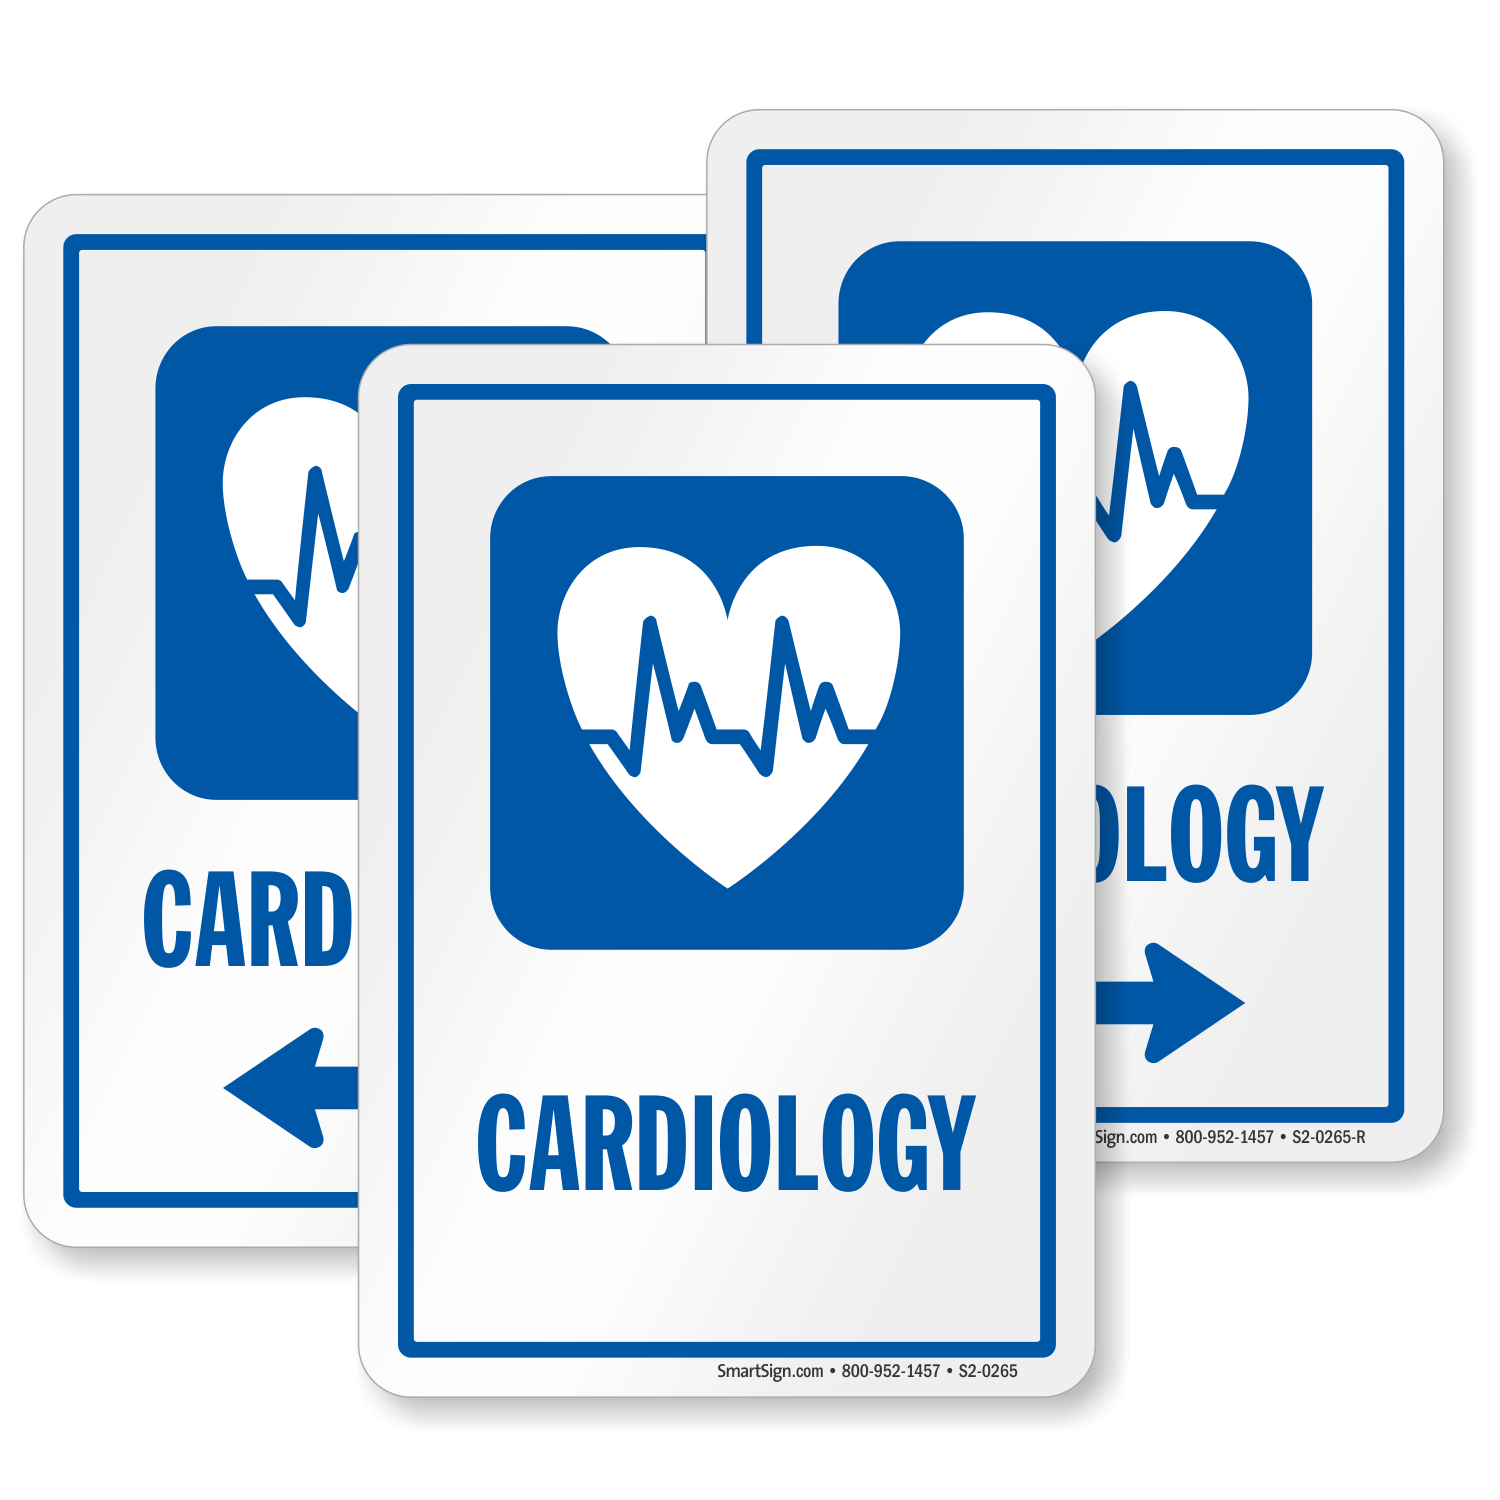 Cardiology Hospital Cardiologist Sign, Heart's Ecg Symbol. Life Insurance For Self Employed. Junk Removal Norwalk Ct Database Market Share. Security Cameras Suppliers Cal Nevada Resort. Mortgage Loan Underwriter Online Backup Apple. John Chevalier Collision Center. Verizon Federal Government Discount. Suntrust Savings Account Online Crna Programs. Business School Online Free Rn Nursing Test